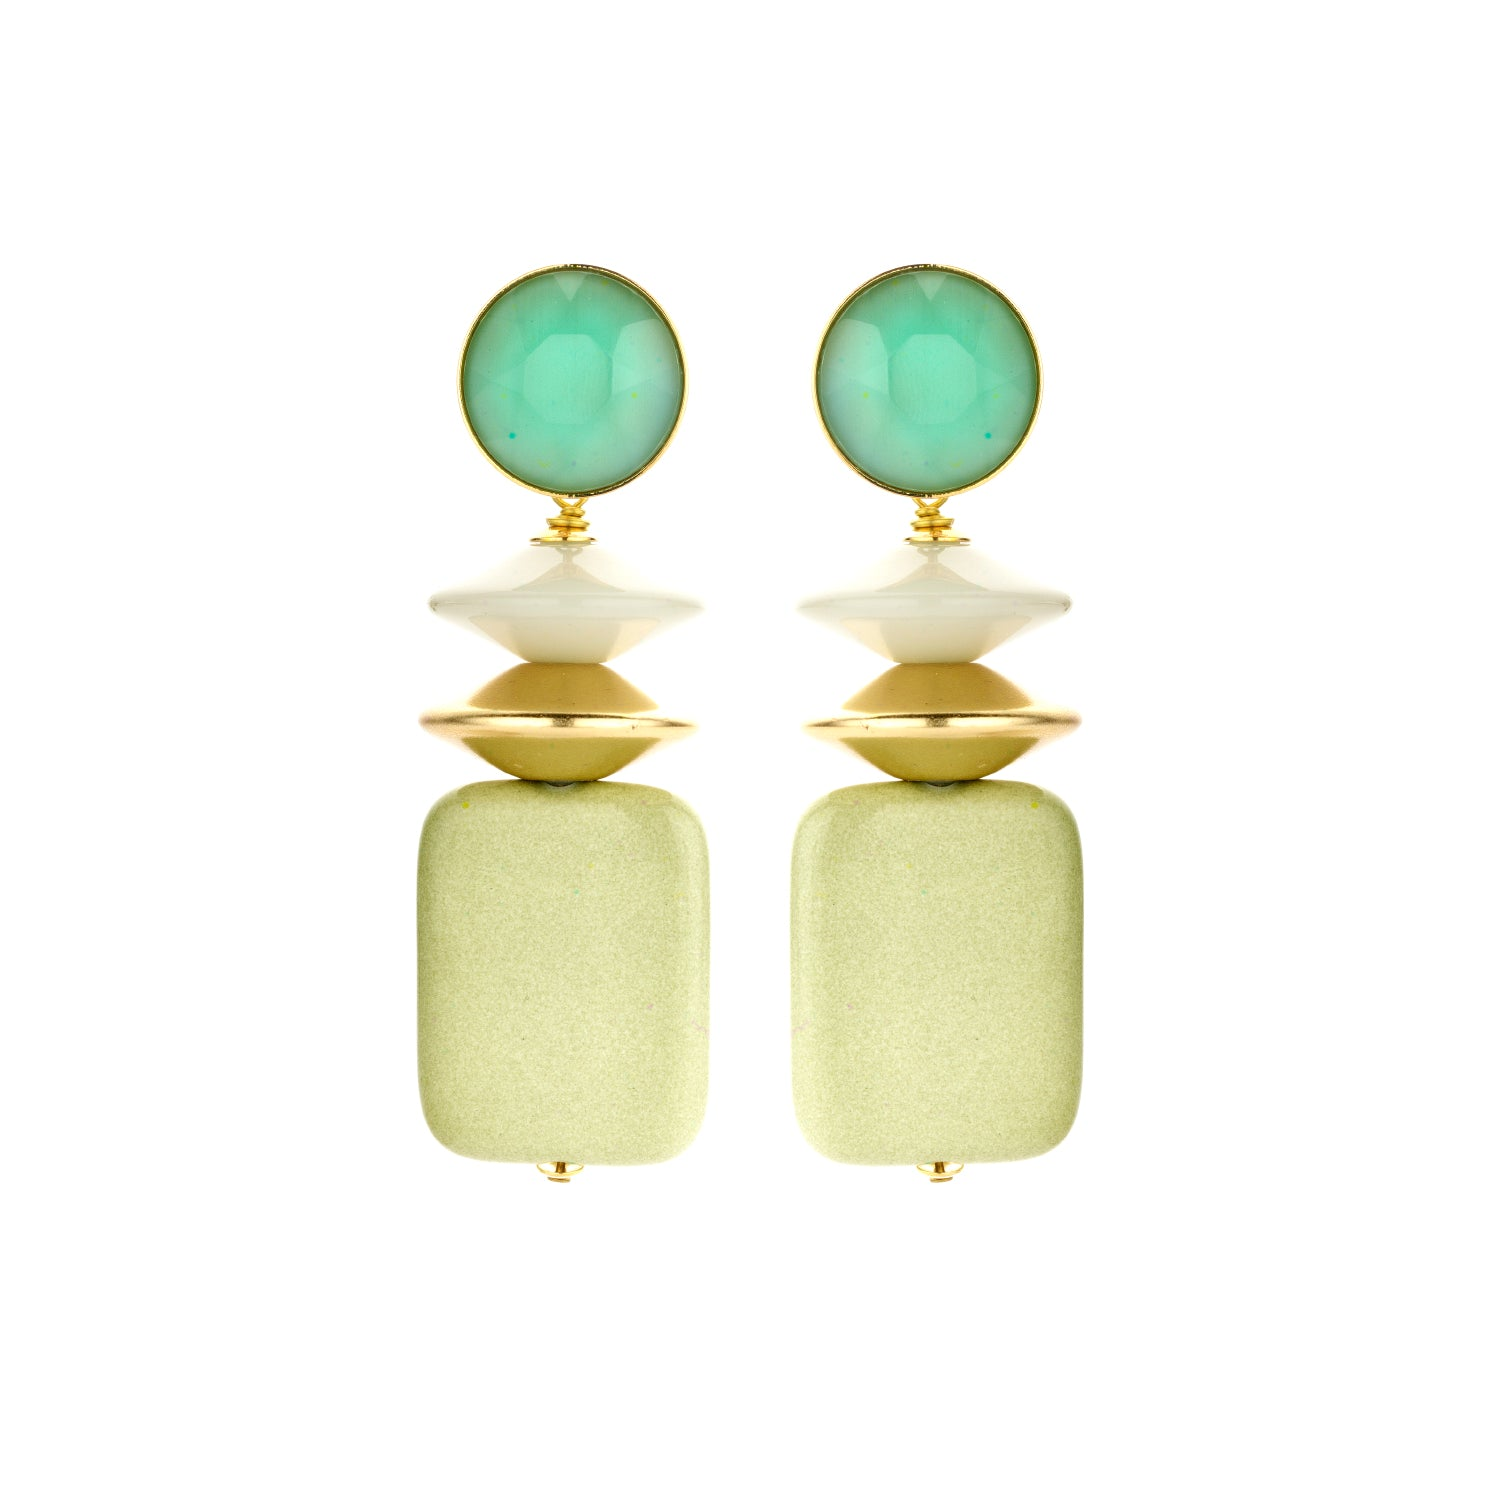 Oceane mix mint earrings - Souvenirs de Pomme